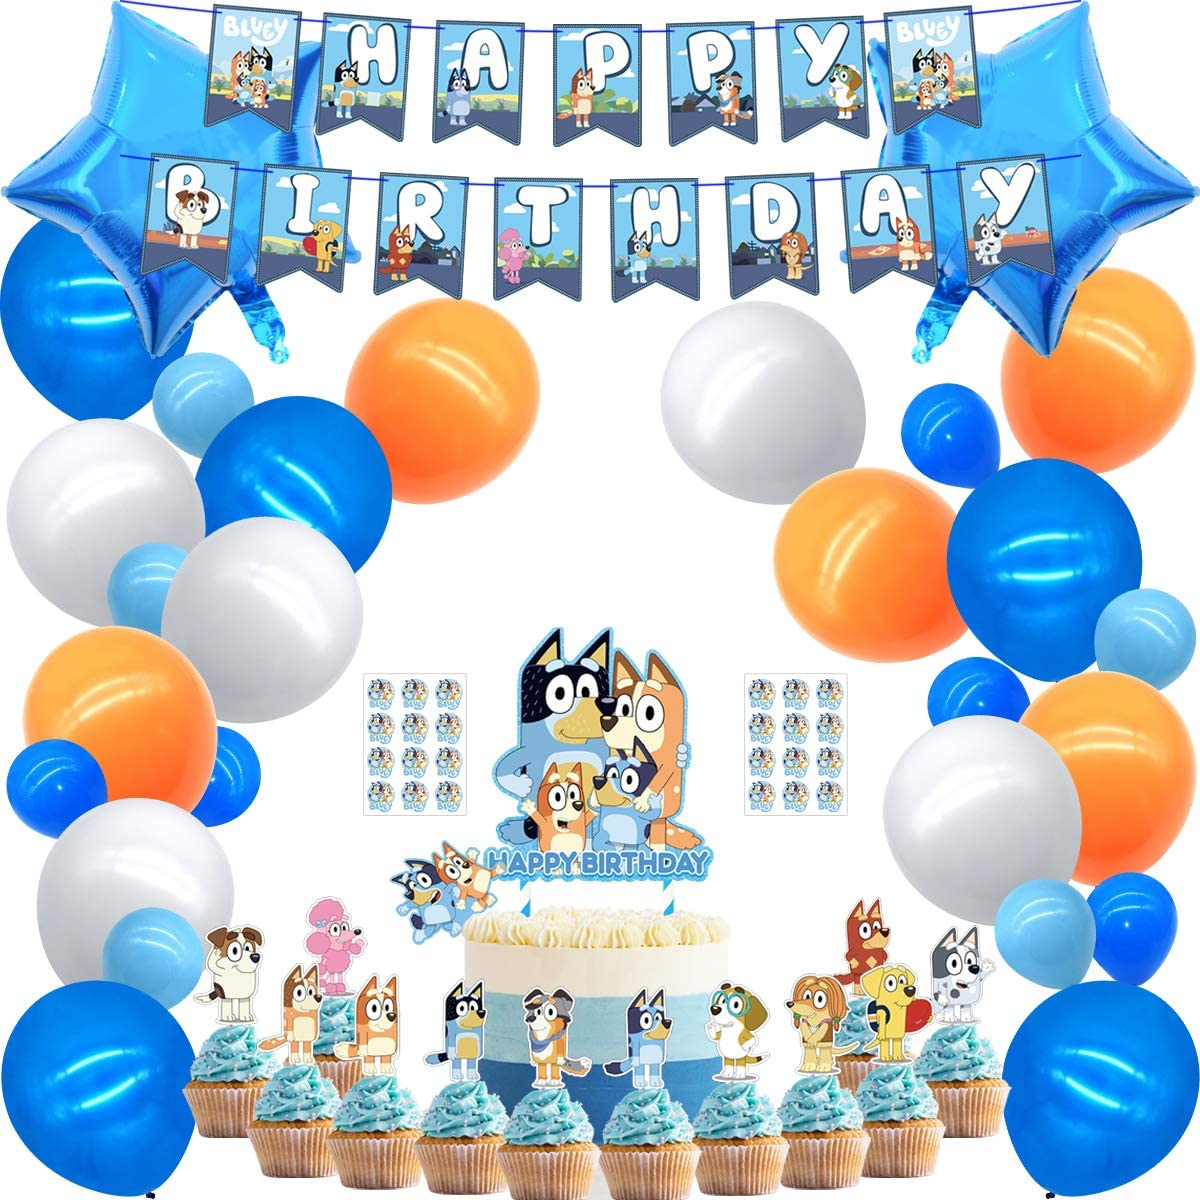 Party supplies for Bluey Theme Party Decorations Cake topper Banner Balloons Stickers Cupcaker Toppers,for Girls Boys Party Supplies